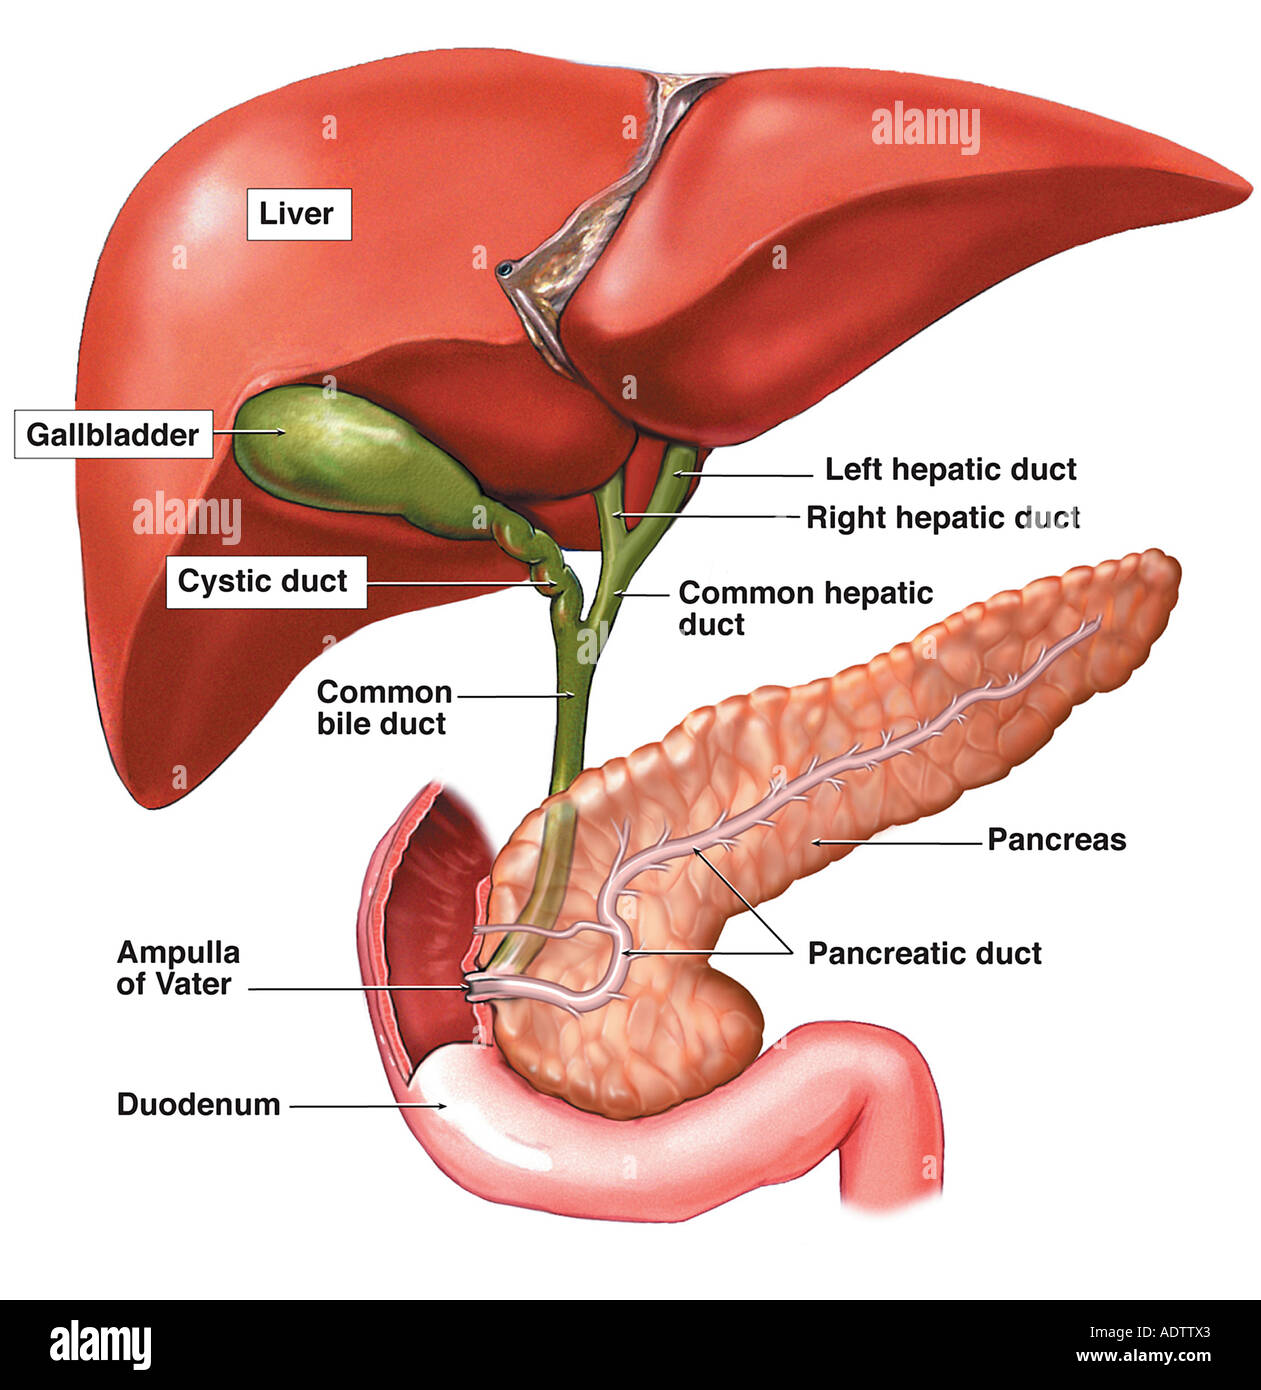 Anatomy of the Hepatic and Pancreatic Ducts Stock Photo: 7710370 - Alamy